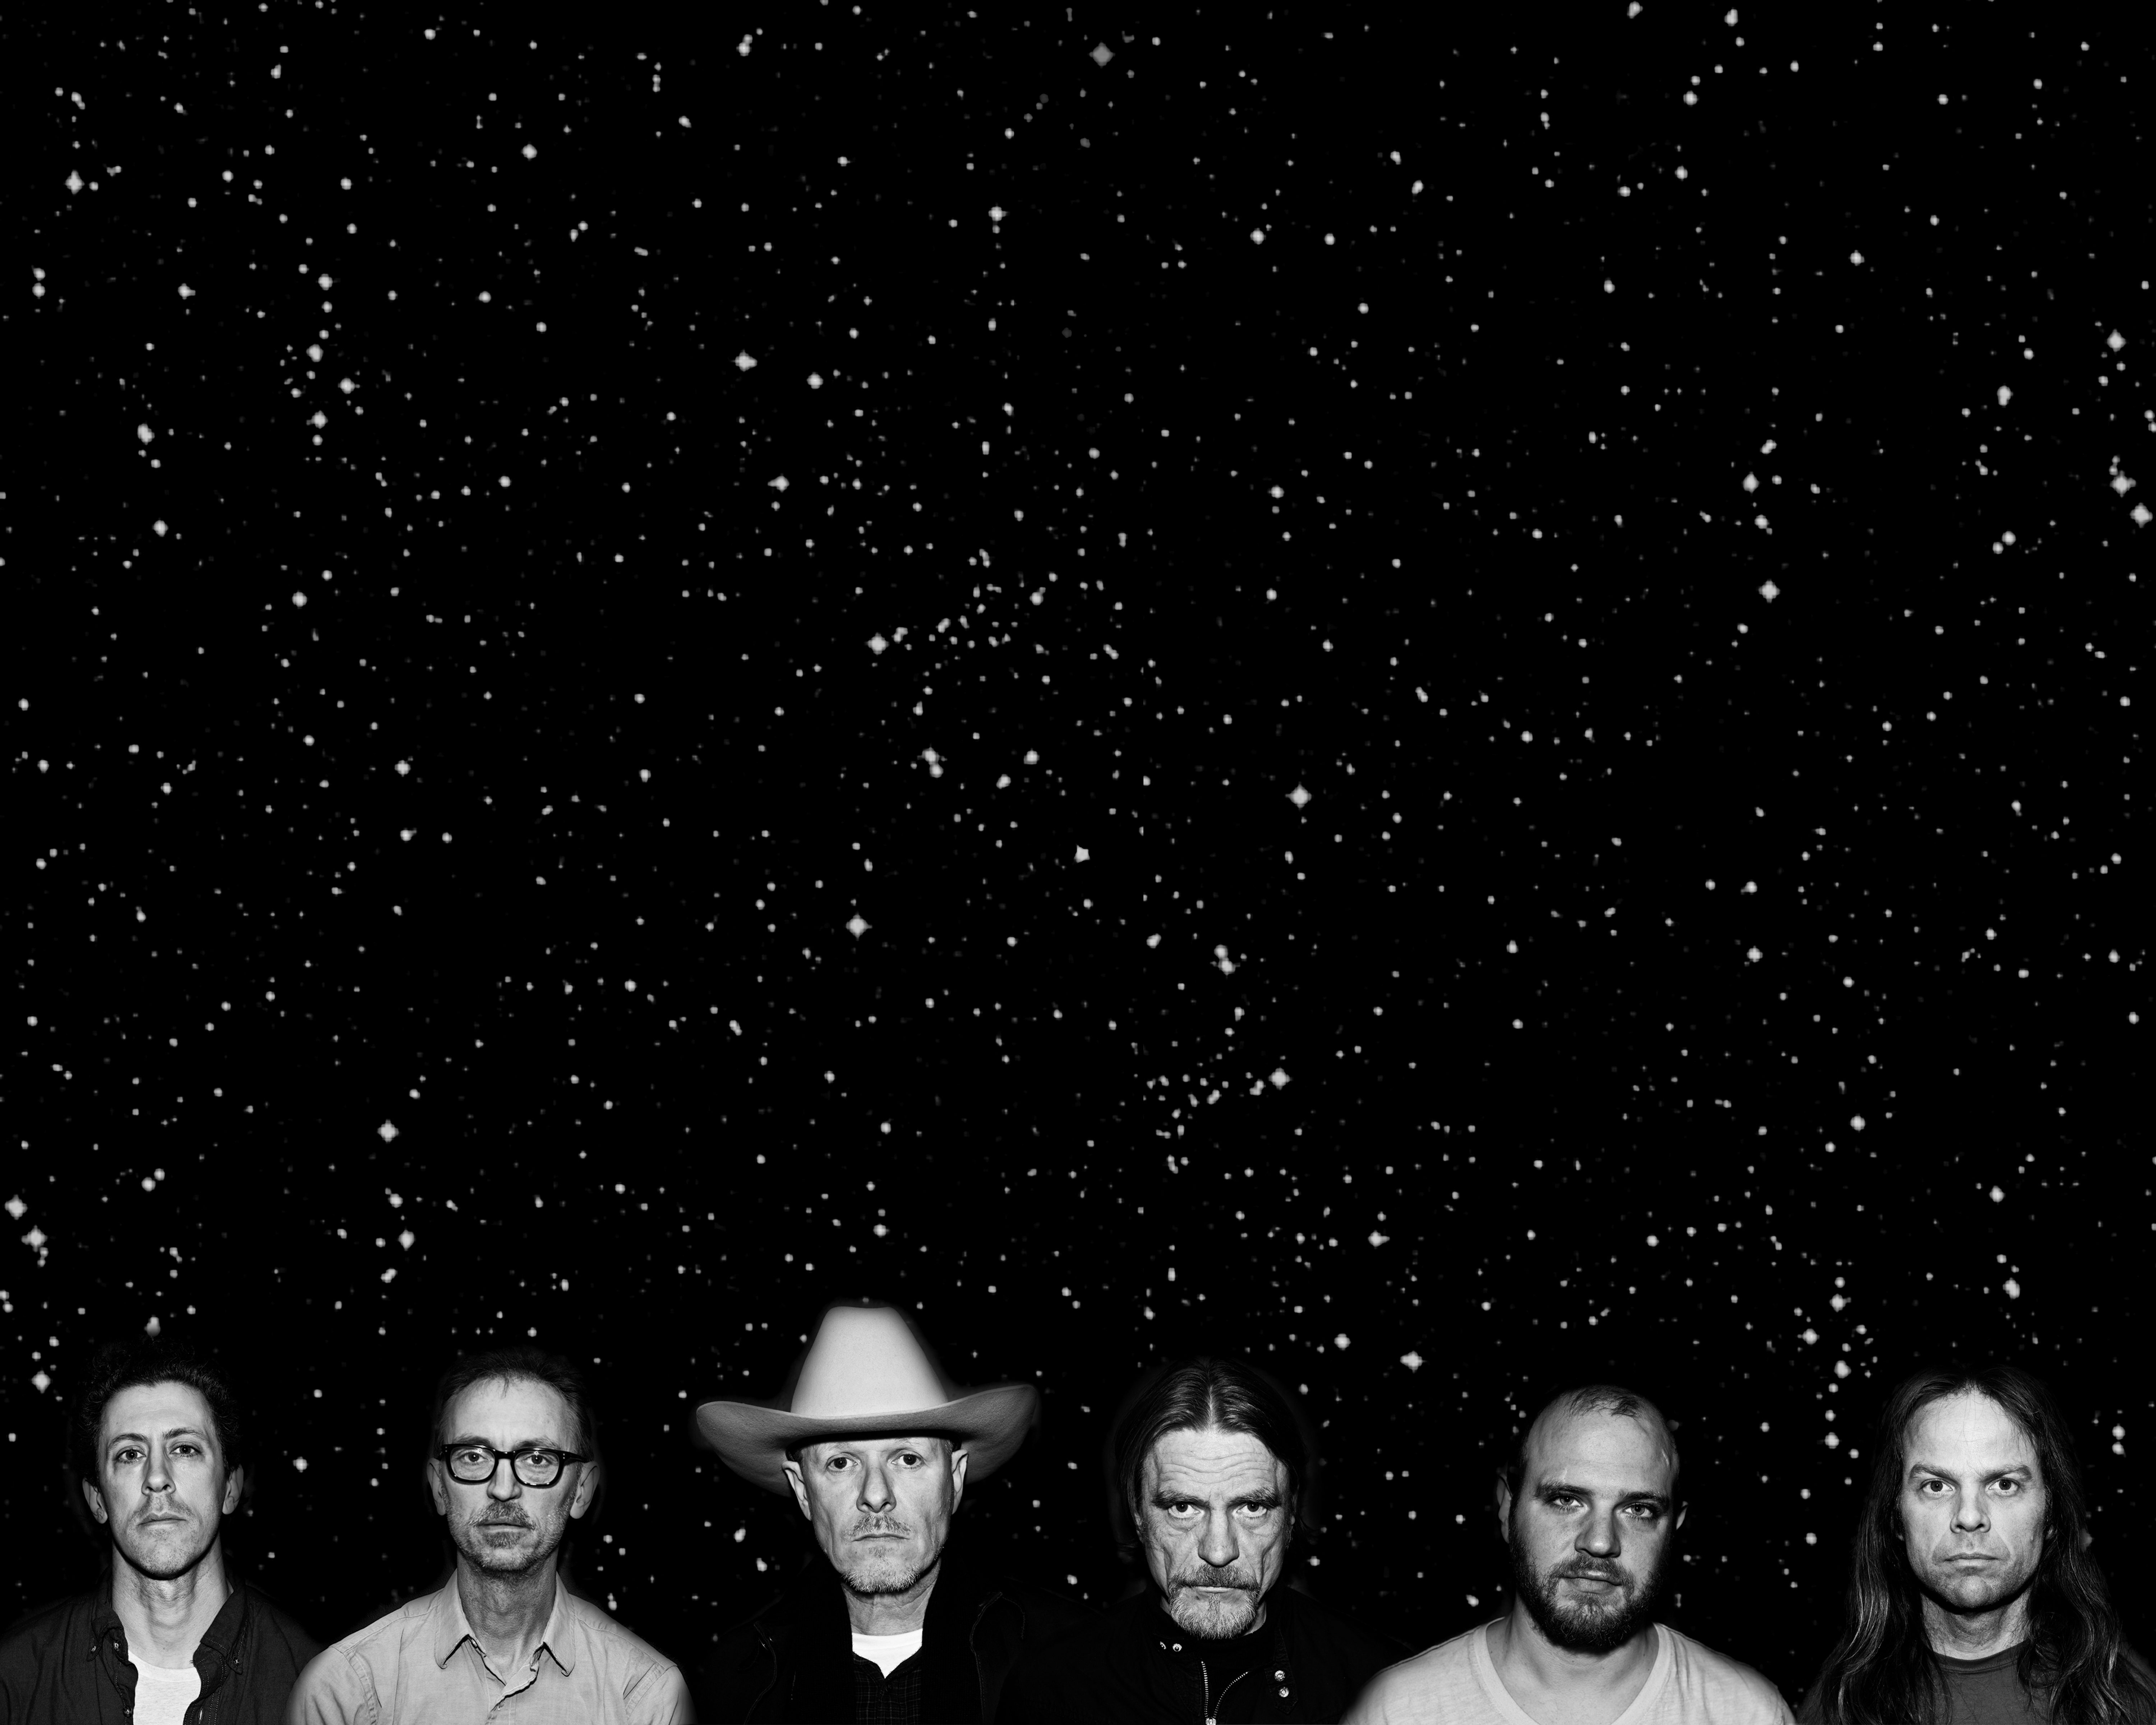 Swans Announce New Album The Glowing Man For June 2016 Release